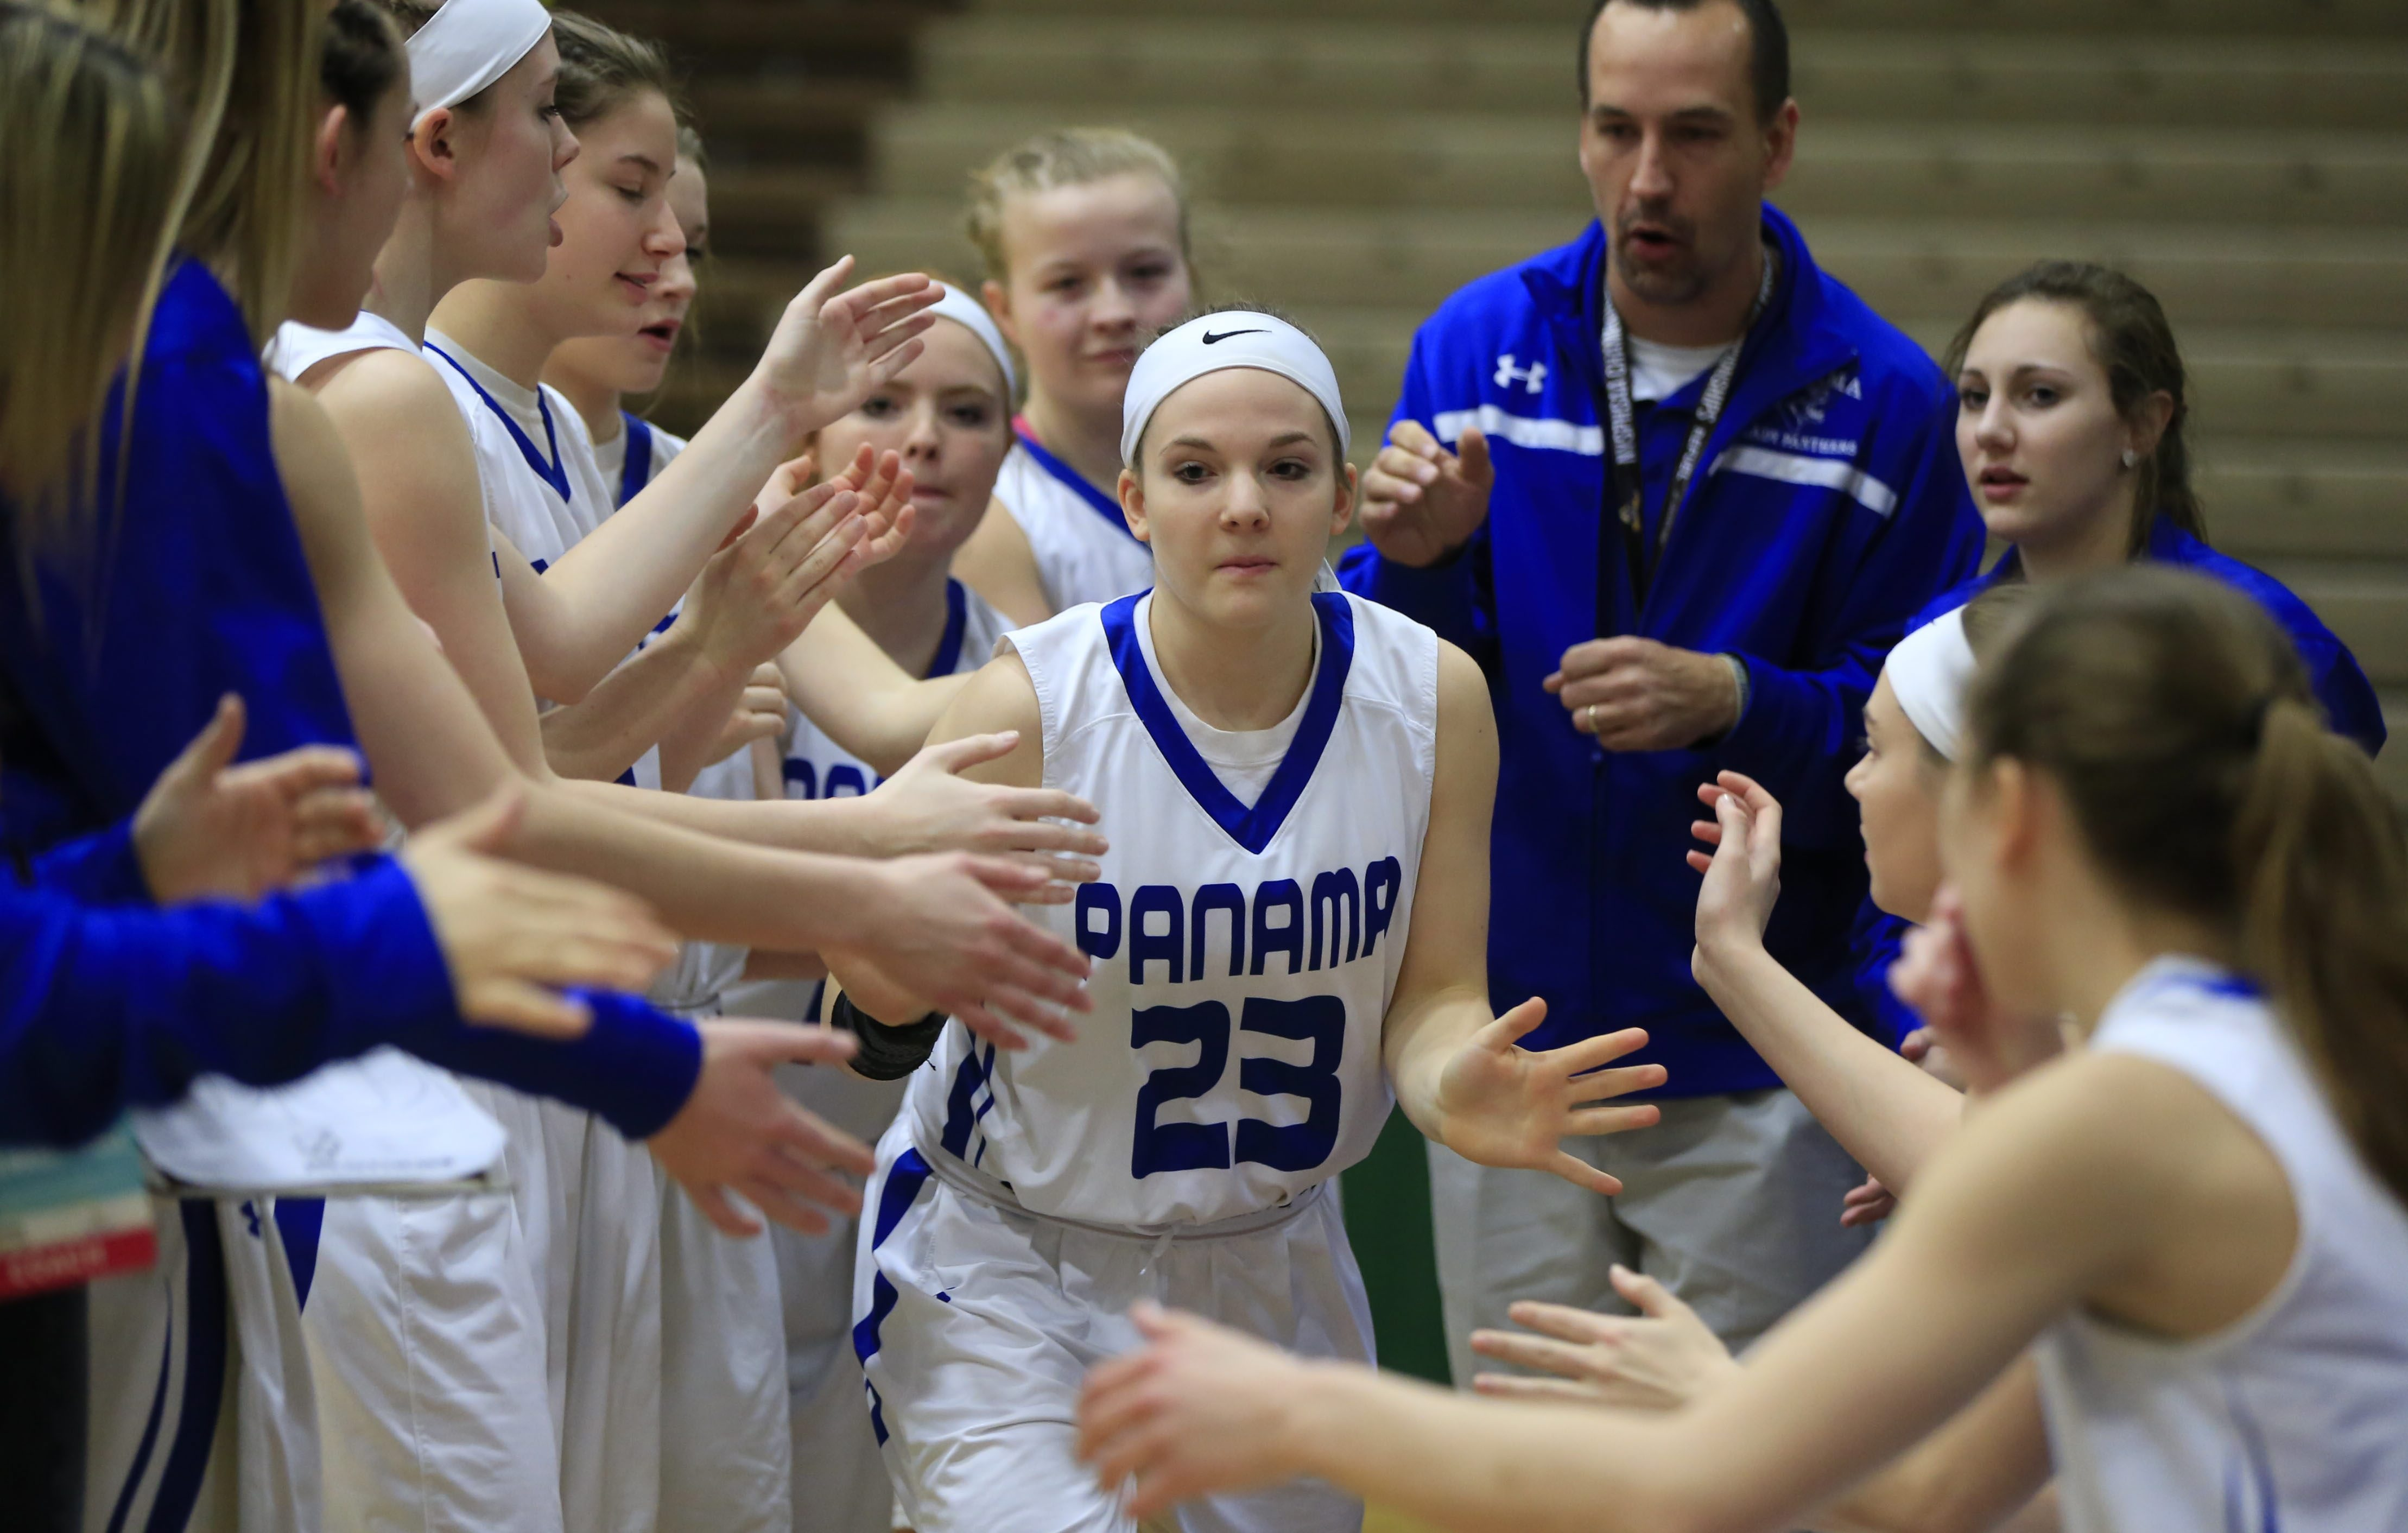 Panama's Madalyn Bowen, shown in a 2016 game, paced the Panthers with 23 points on Saturday. (Harry Scull Jr./Buffalo News)